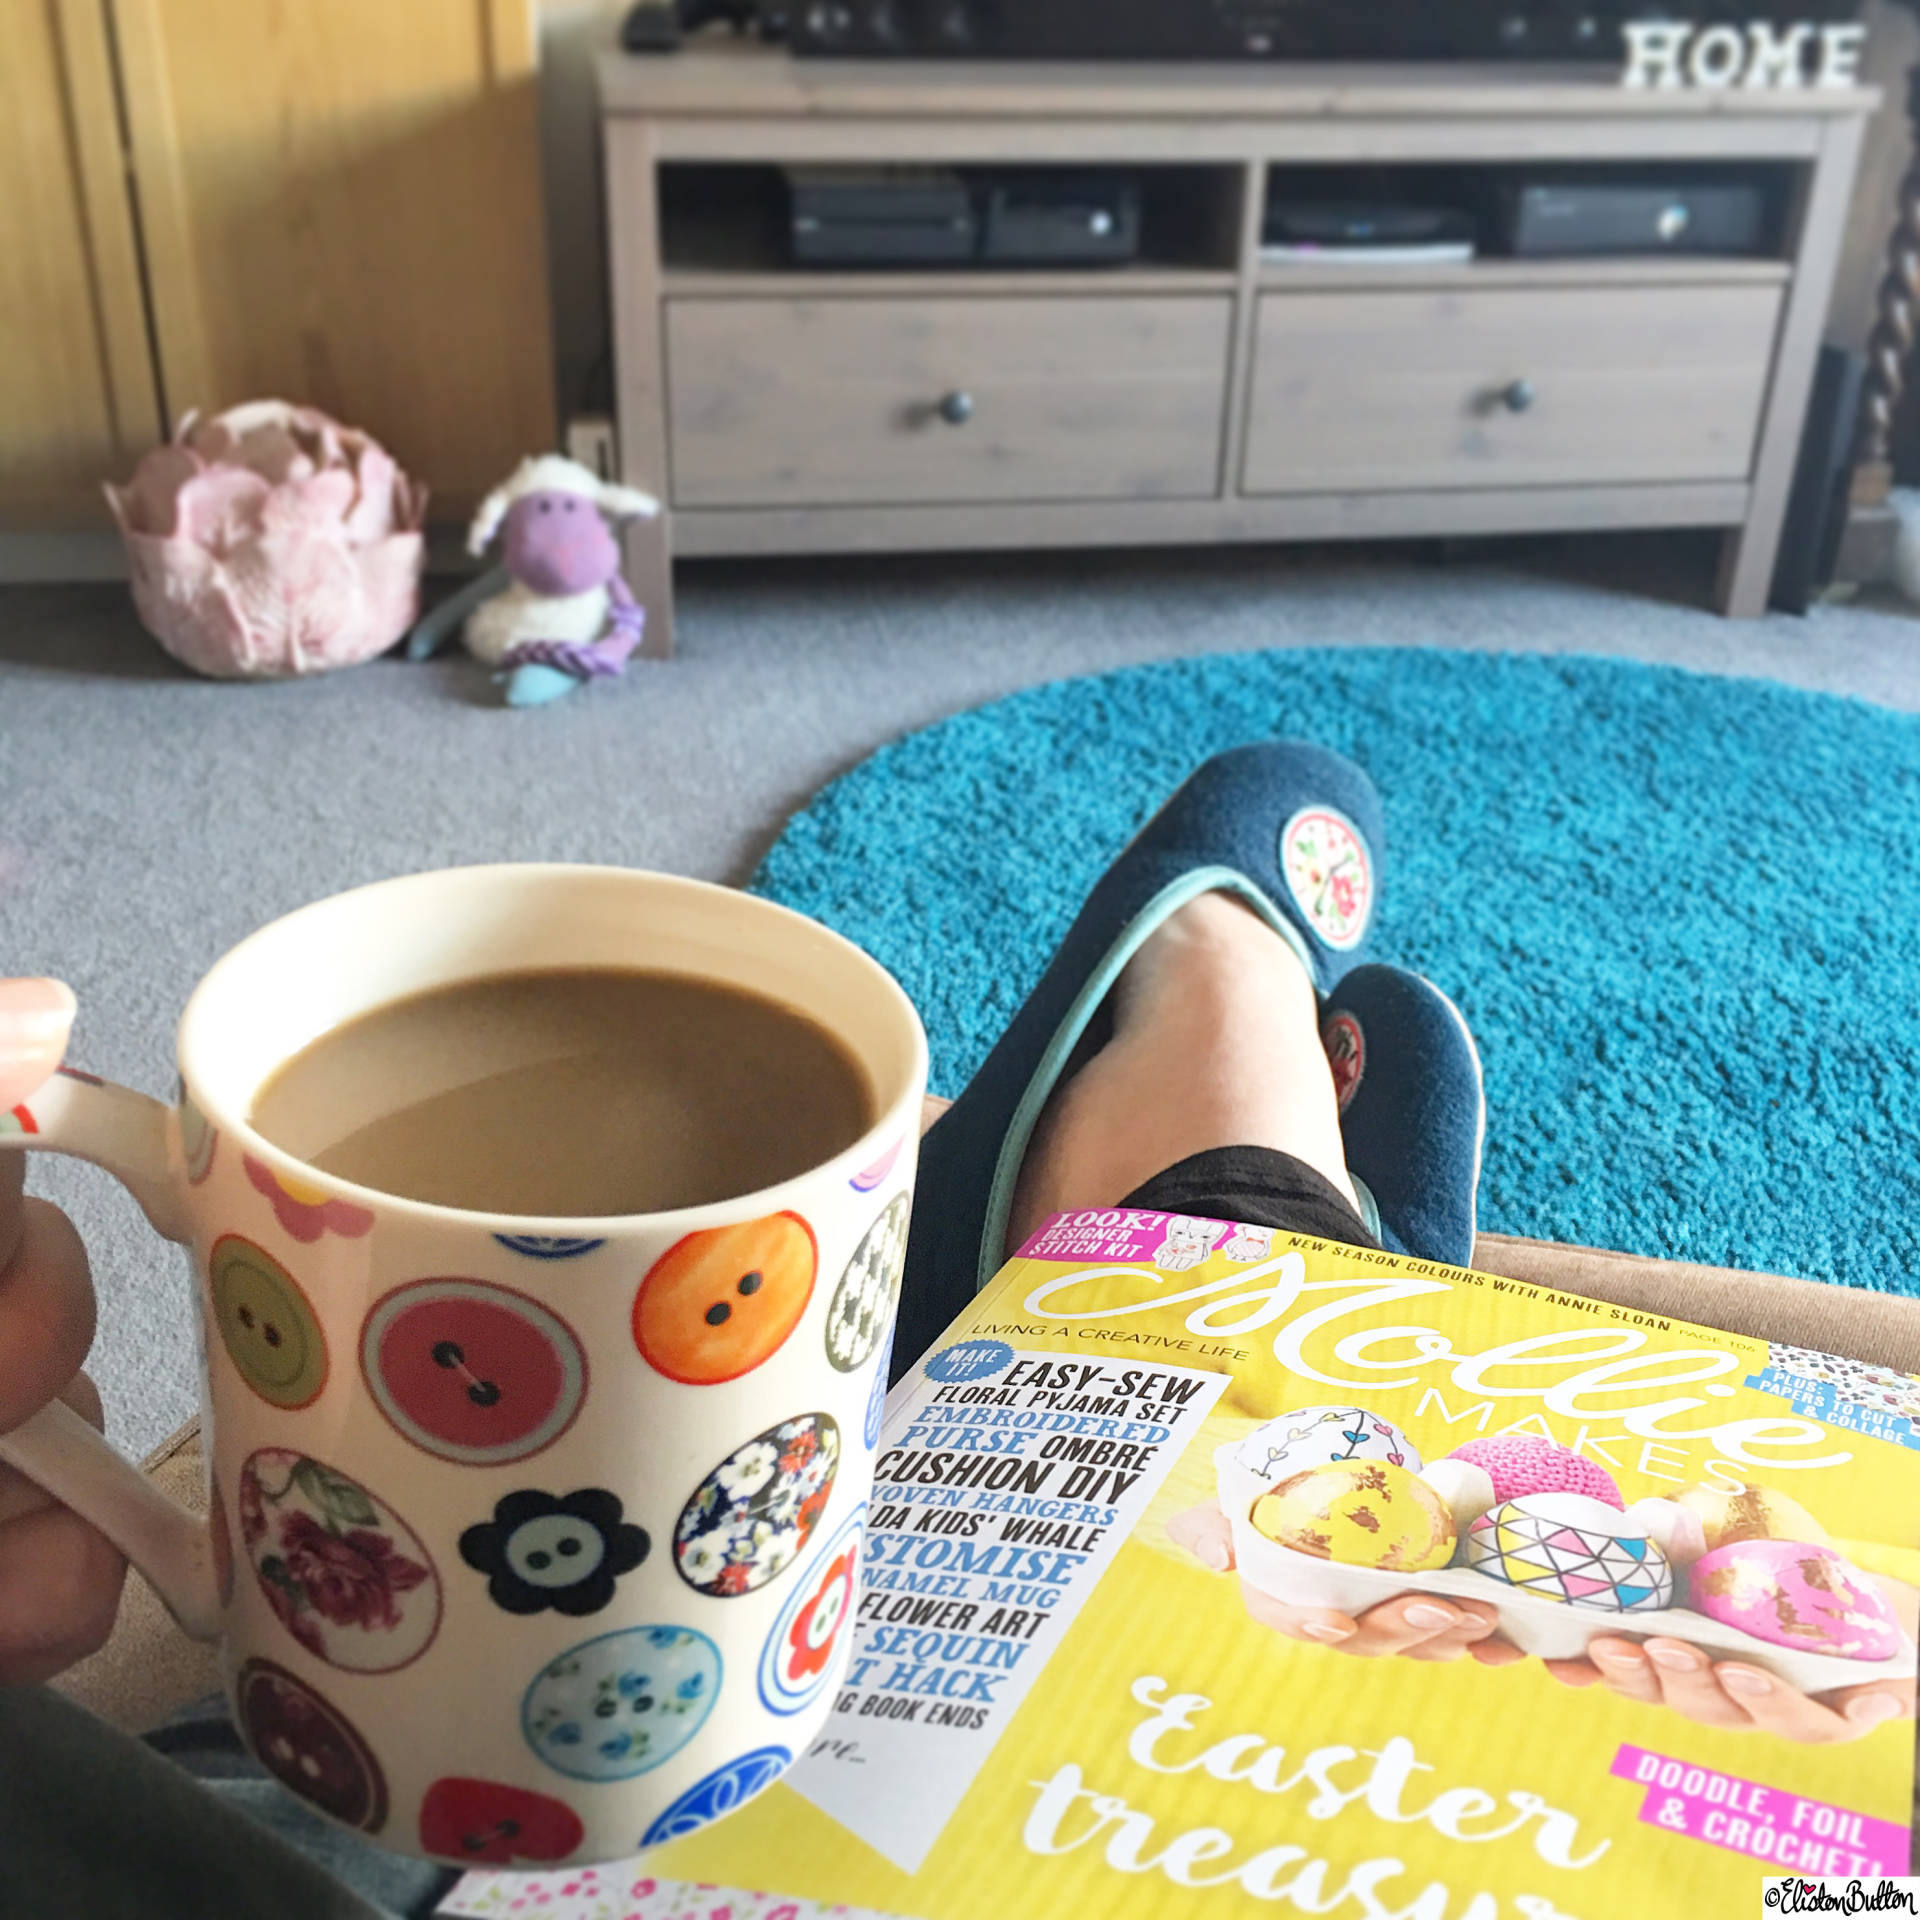 Day 02 - Good - Cup of Coffee and Mollie Makes Magazine - Photo-a-Day – March 2016 at www.elistonbutton.com - Eliston Button - That Crafty Kid – Art, Design, Craft & Adventure.